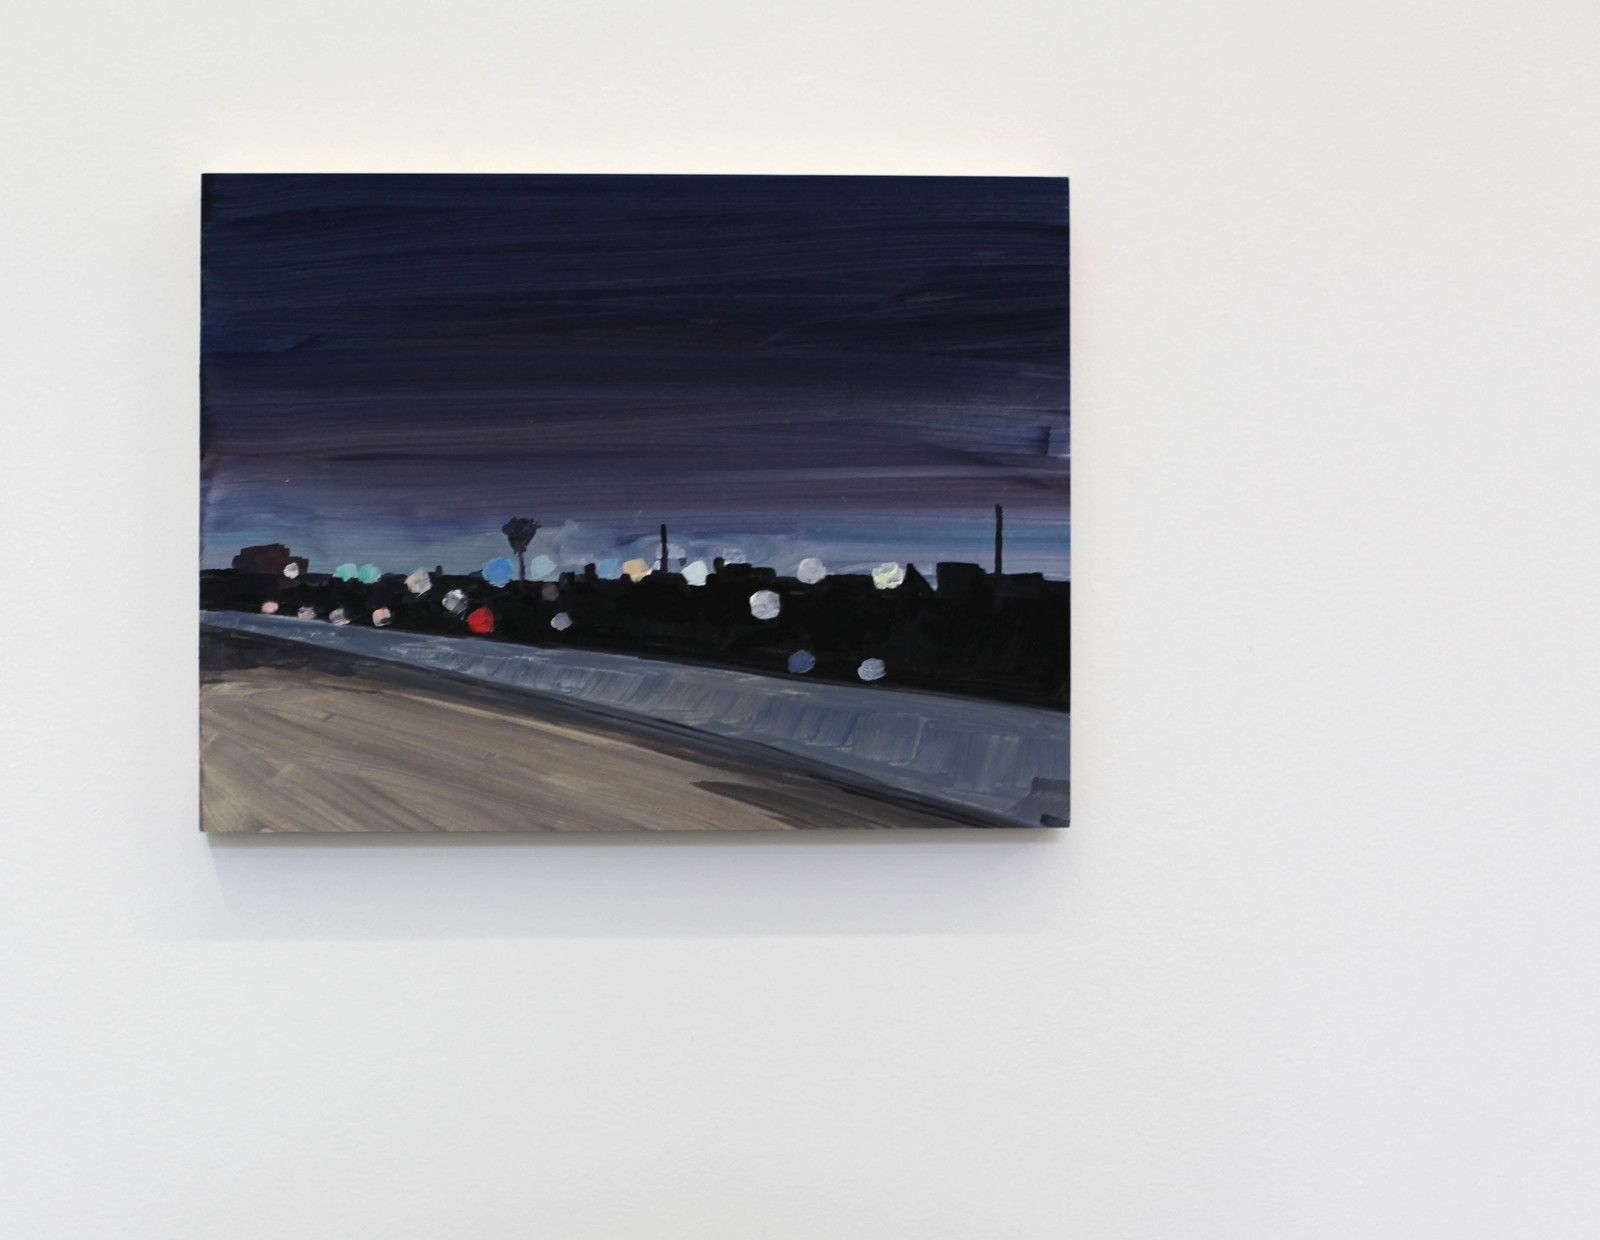 """Highway night"", 2019 de Jean Philippe DELHOMME - Courtesy Galerie Perrotin © Photo Éric Simon"